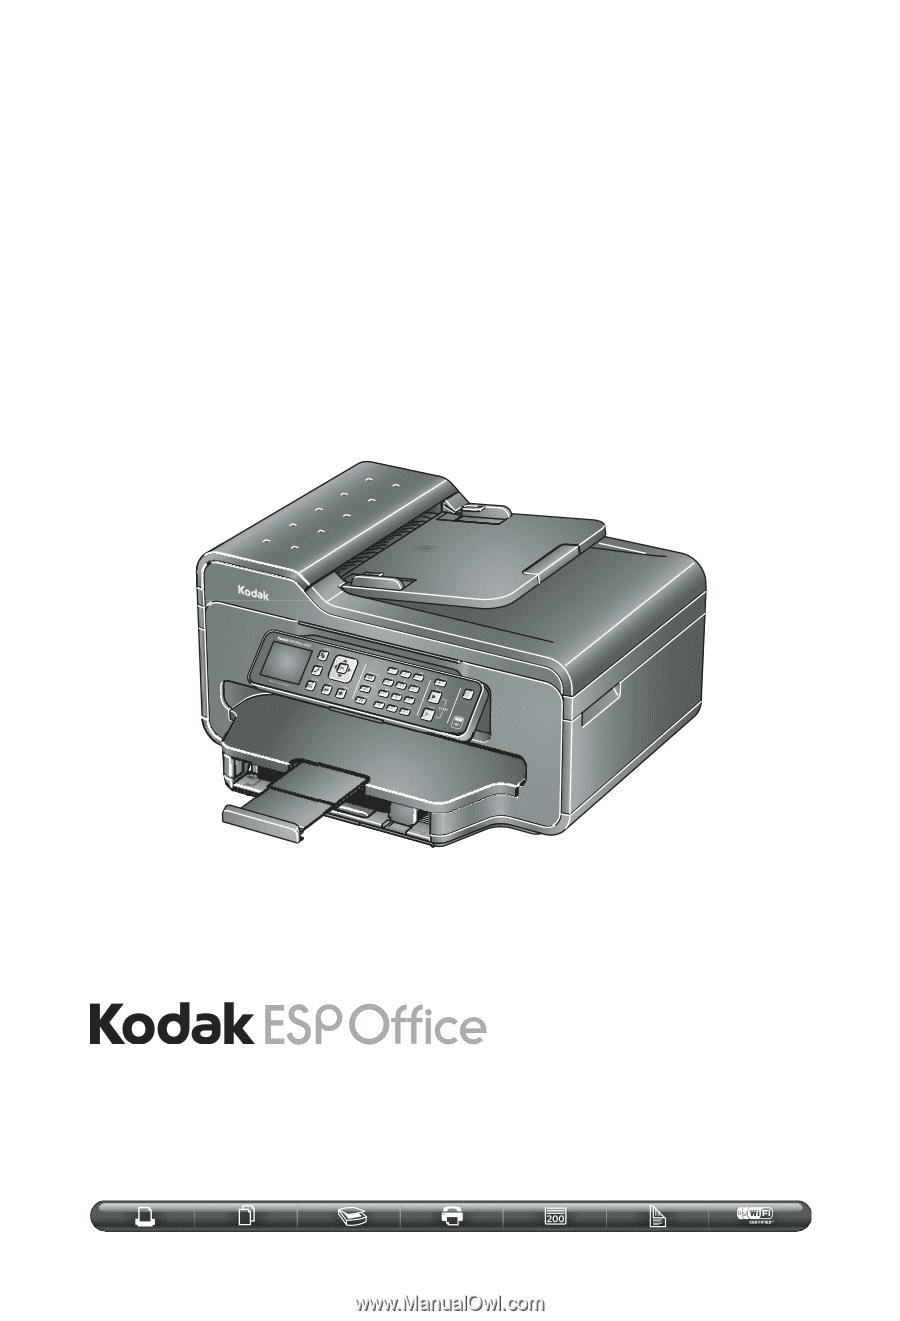 kodak esp office 2150 owners manual